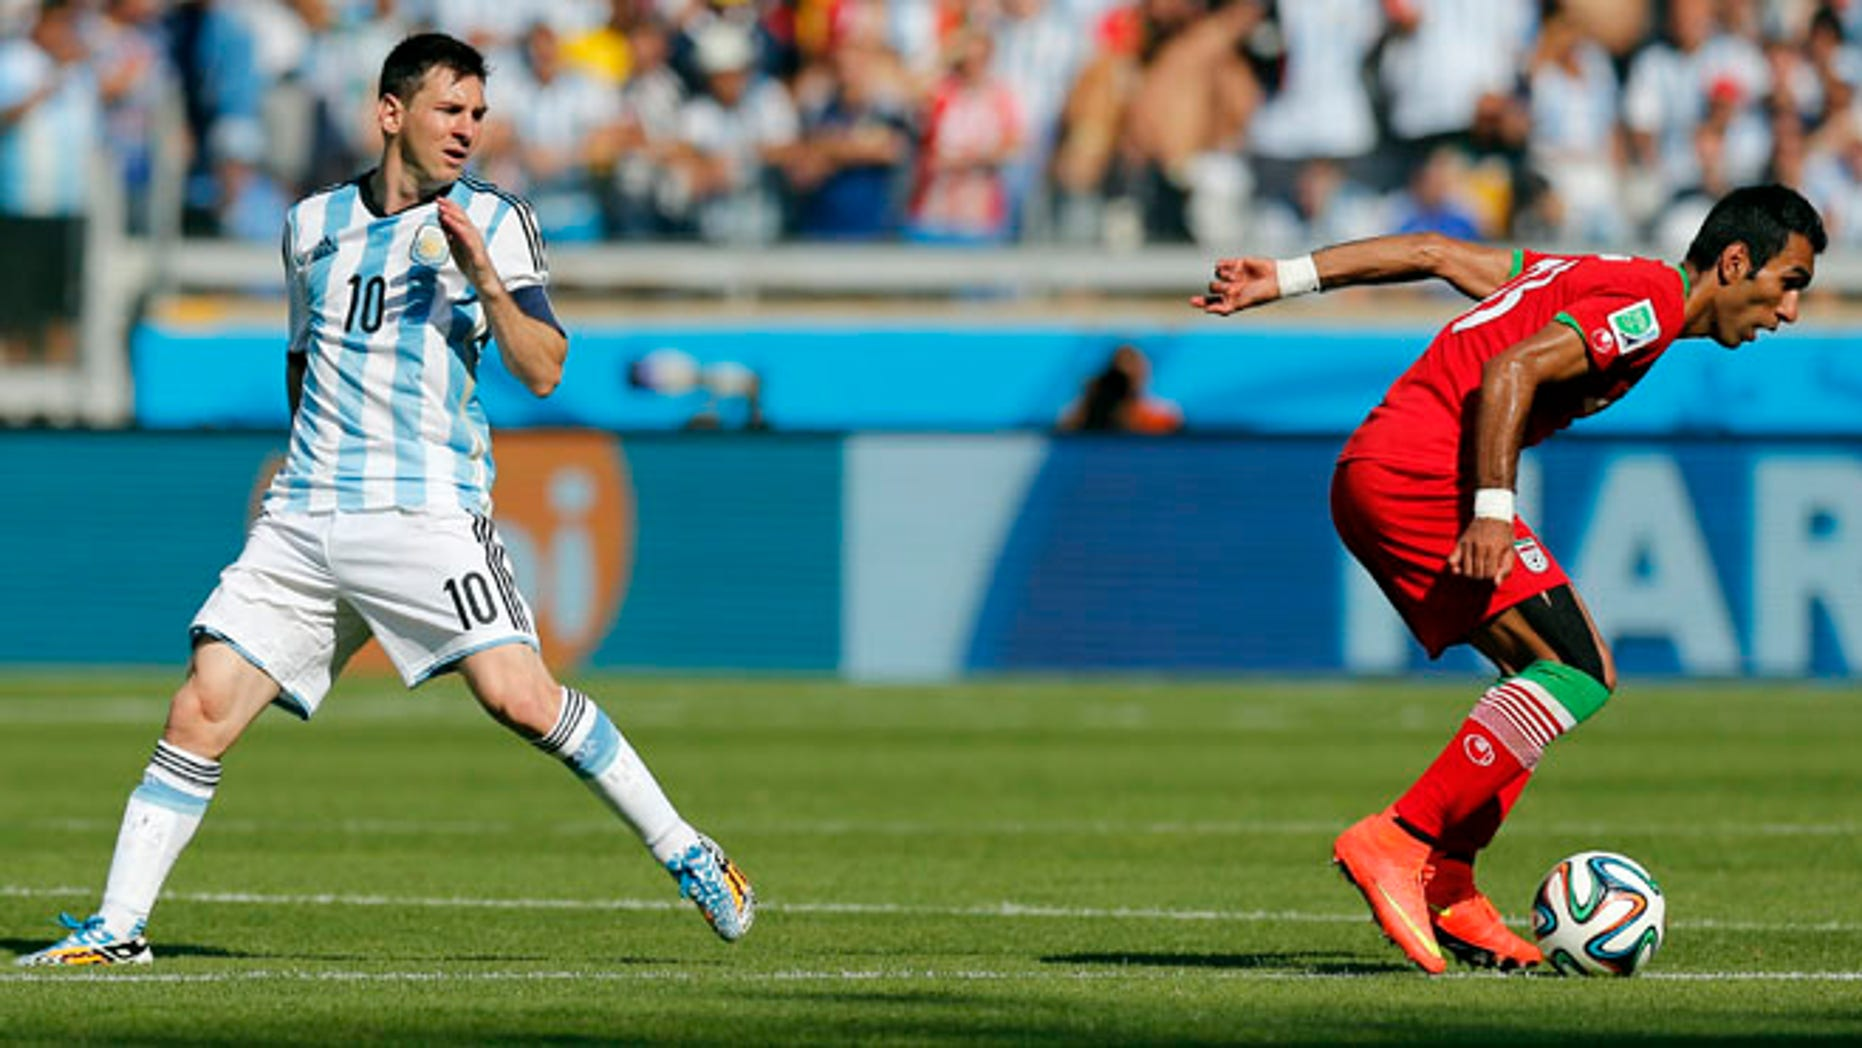 June 21, 2014: Argentina's Lionel Messi, left, watches as Iran's Mehrdad Pooladi takes the ball away from him during the group F World Cup soccer match between Argentina and Iran at the Mineirao Stadium in Belo Horizonte, Brazil.